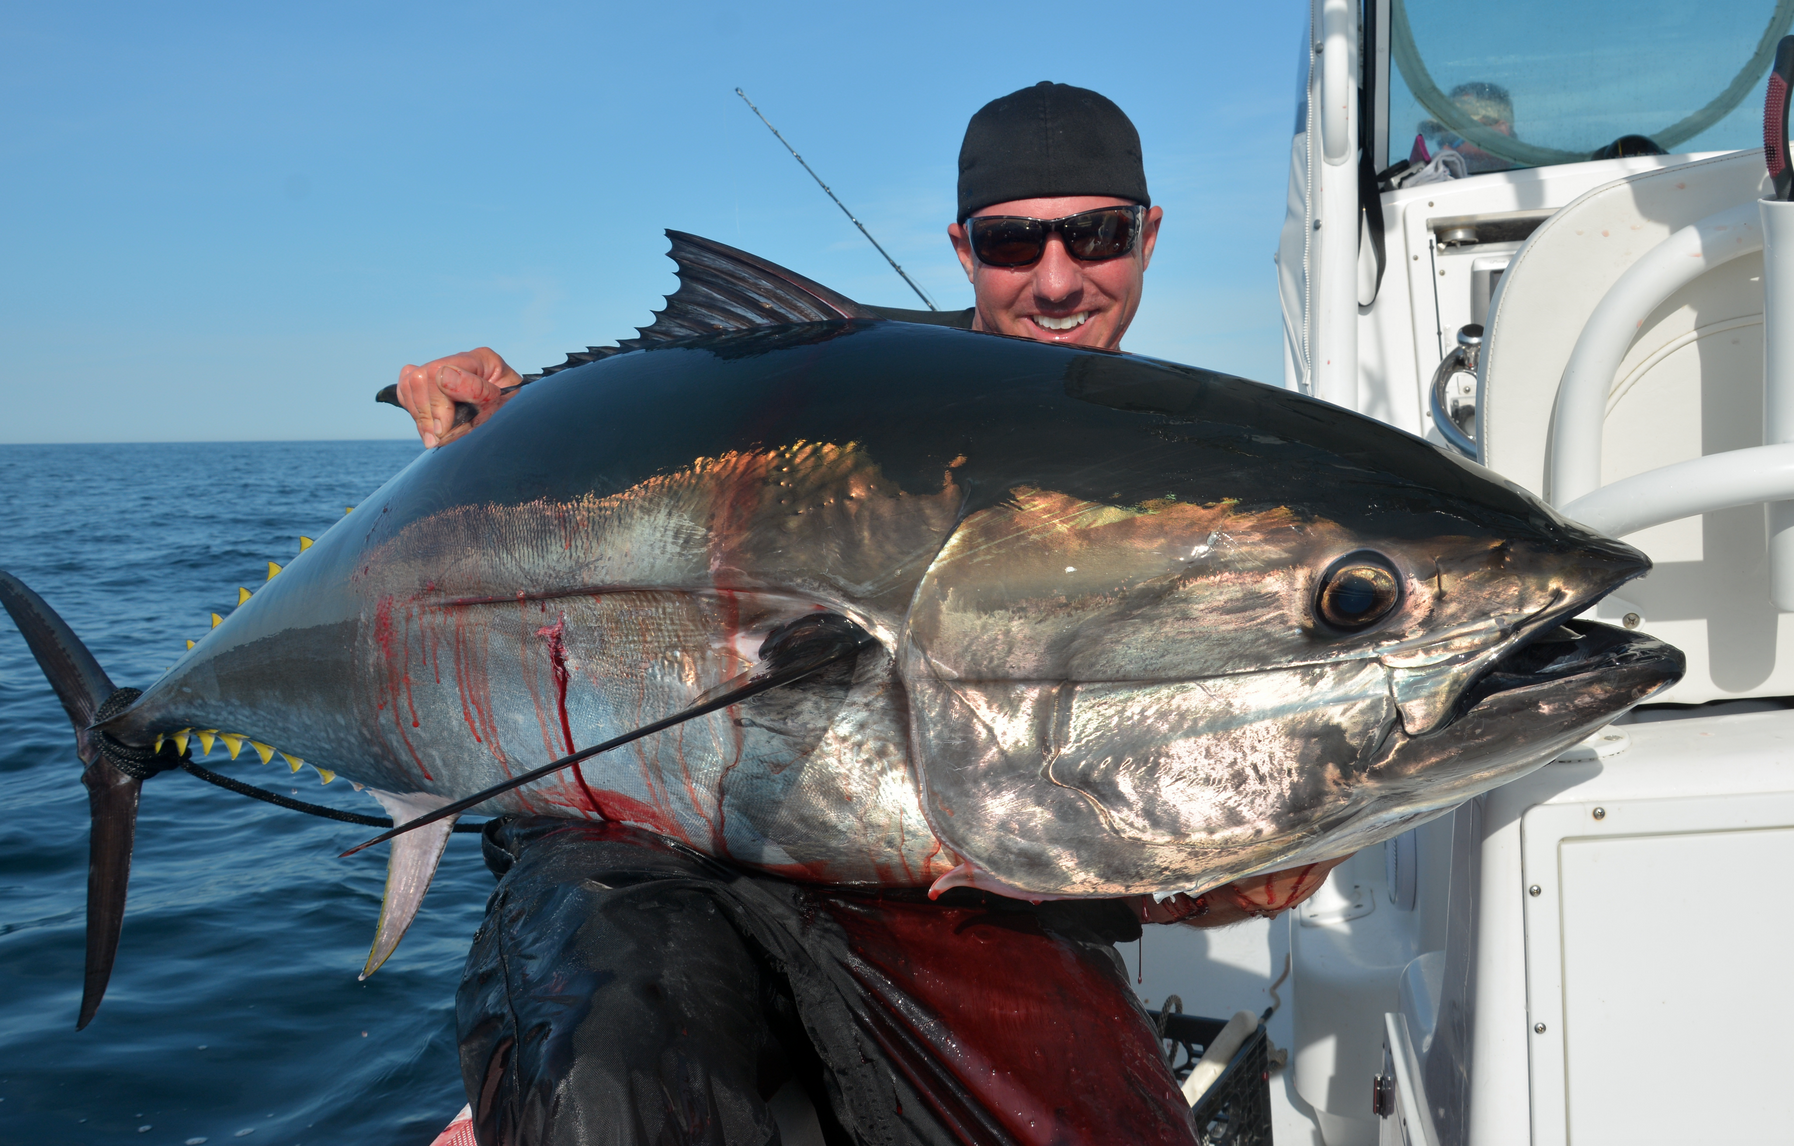 Ricky and nathan brennan of catching monsters discovery tv for What does a tuna fish look like